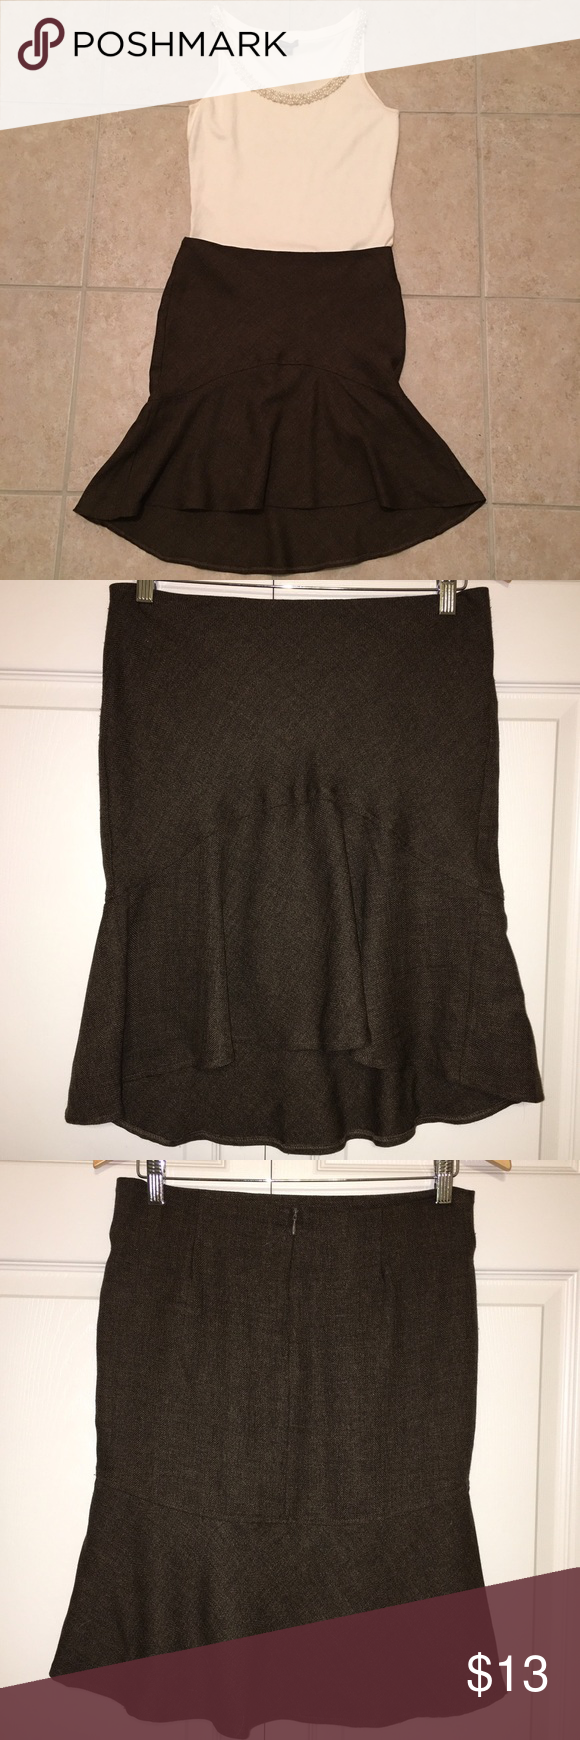 """PRETTY PREPPY SKIRT 💋NWOT 💋An absolute gorgeous preppy, ruffled skirt that reminds me of Britney Spears's """"...Baby One More Time"""" music video. 💋Length of skirt: * Front is 18""""  * Back is 21"""" 💋Hidden zipper in the back. 💋100% polyester 💄Blouse isn't included💄 🎀FIRM PRICE🎀 🎀BUNDLE OPTION🎀 🎀NO TRADES🎀 Skirts High Low"""